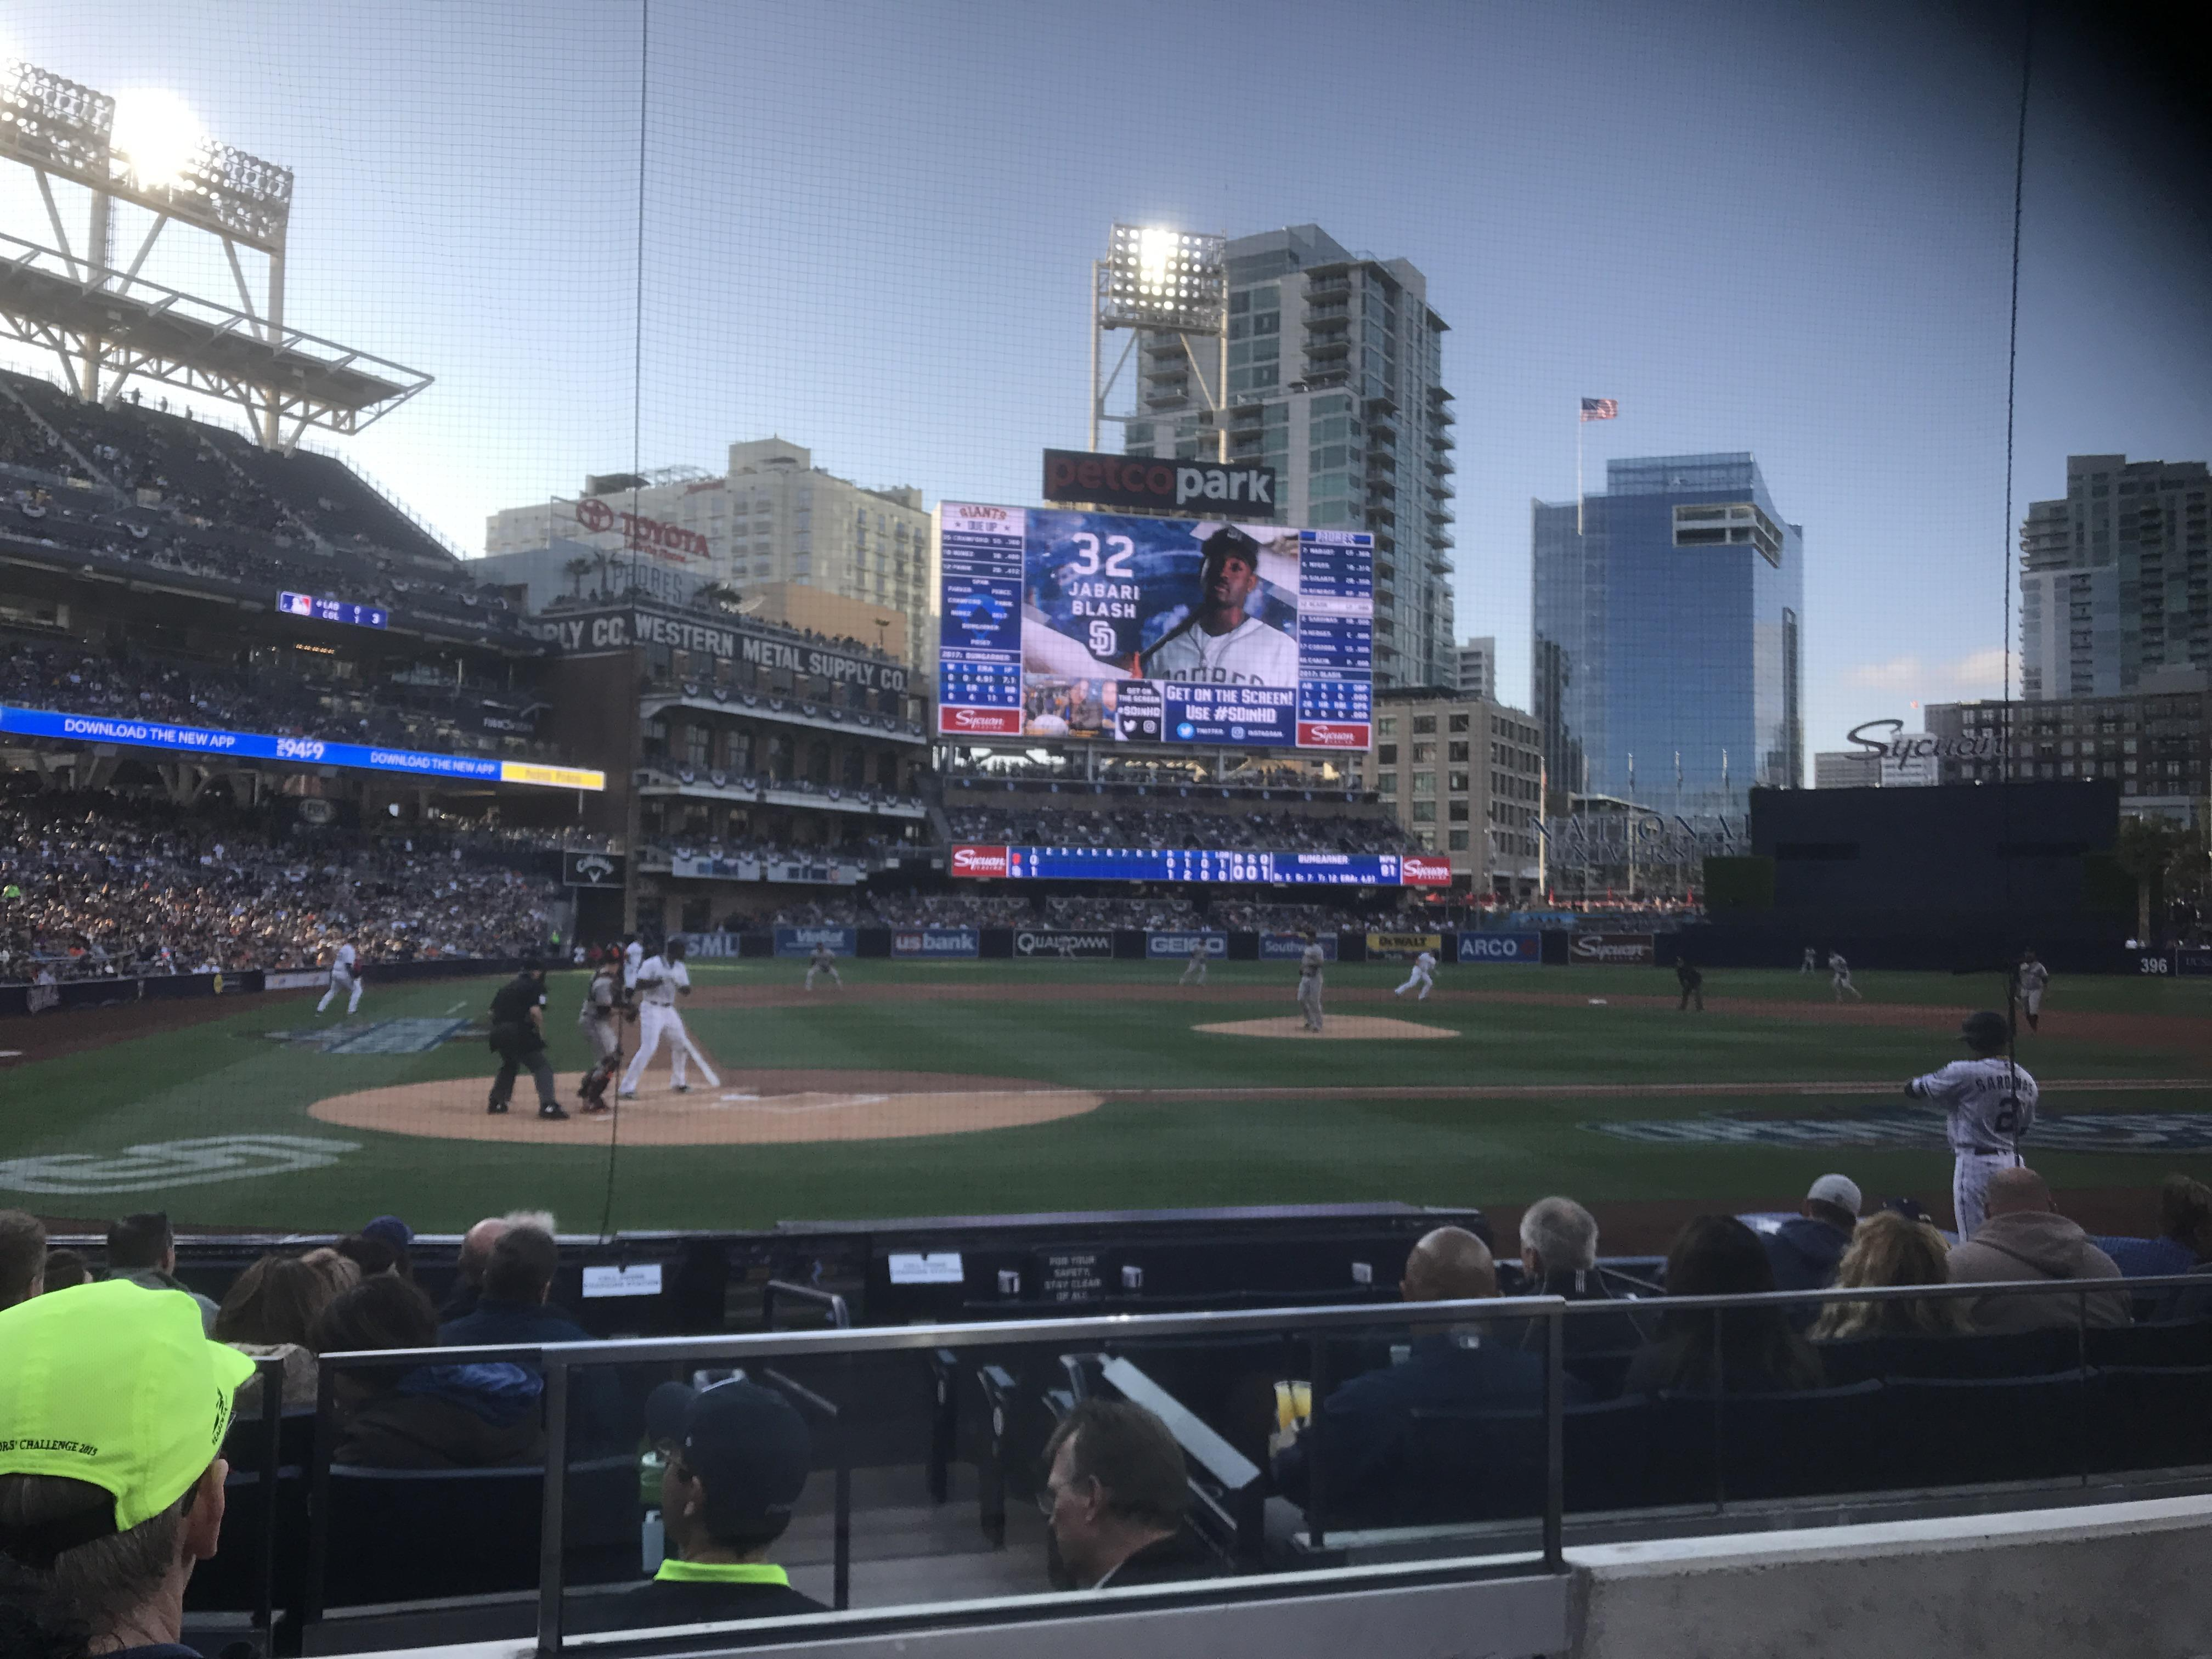 PETCO Park Section 103 Row 10 Seat 11